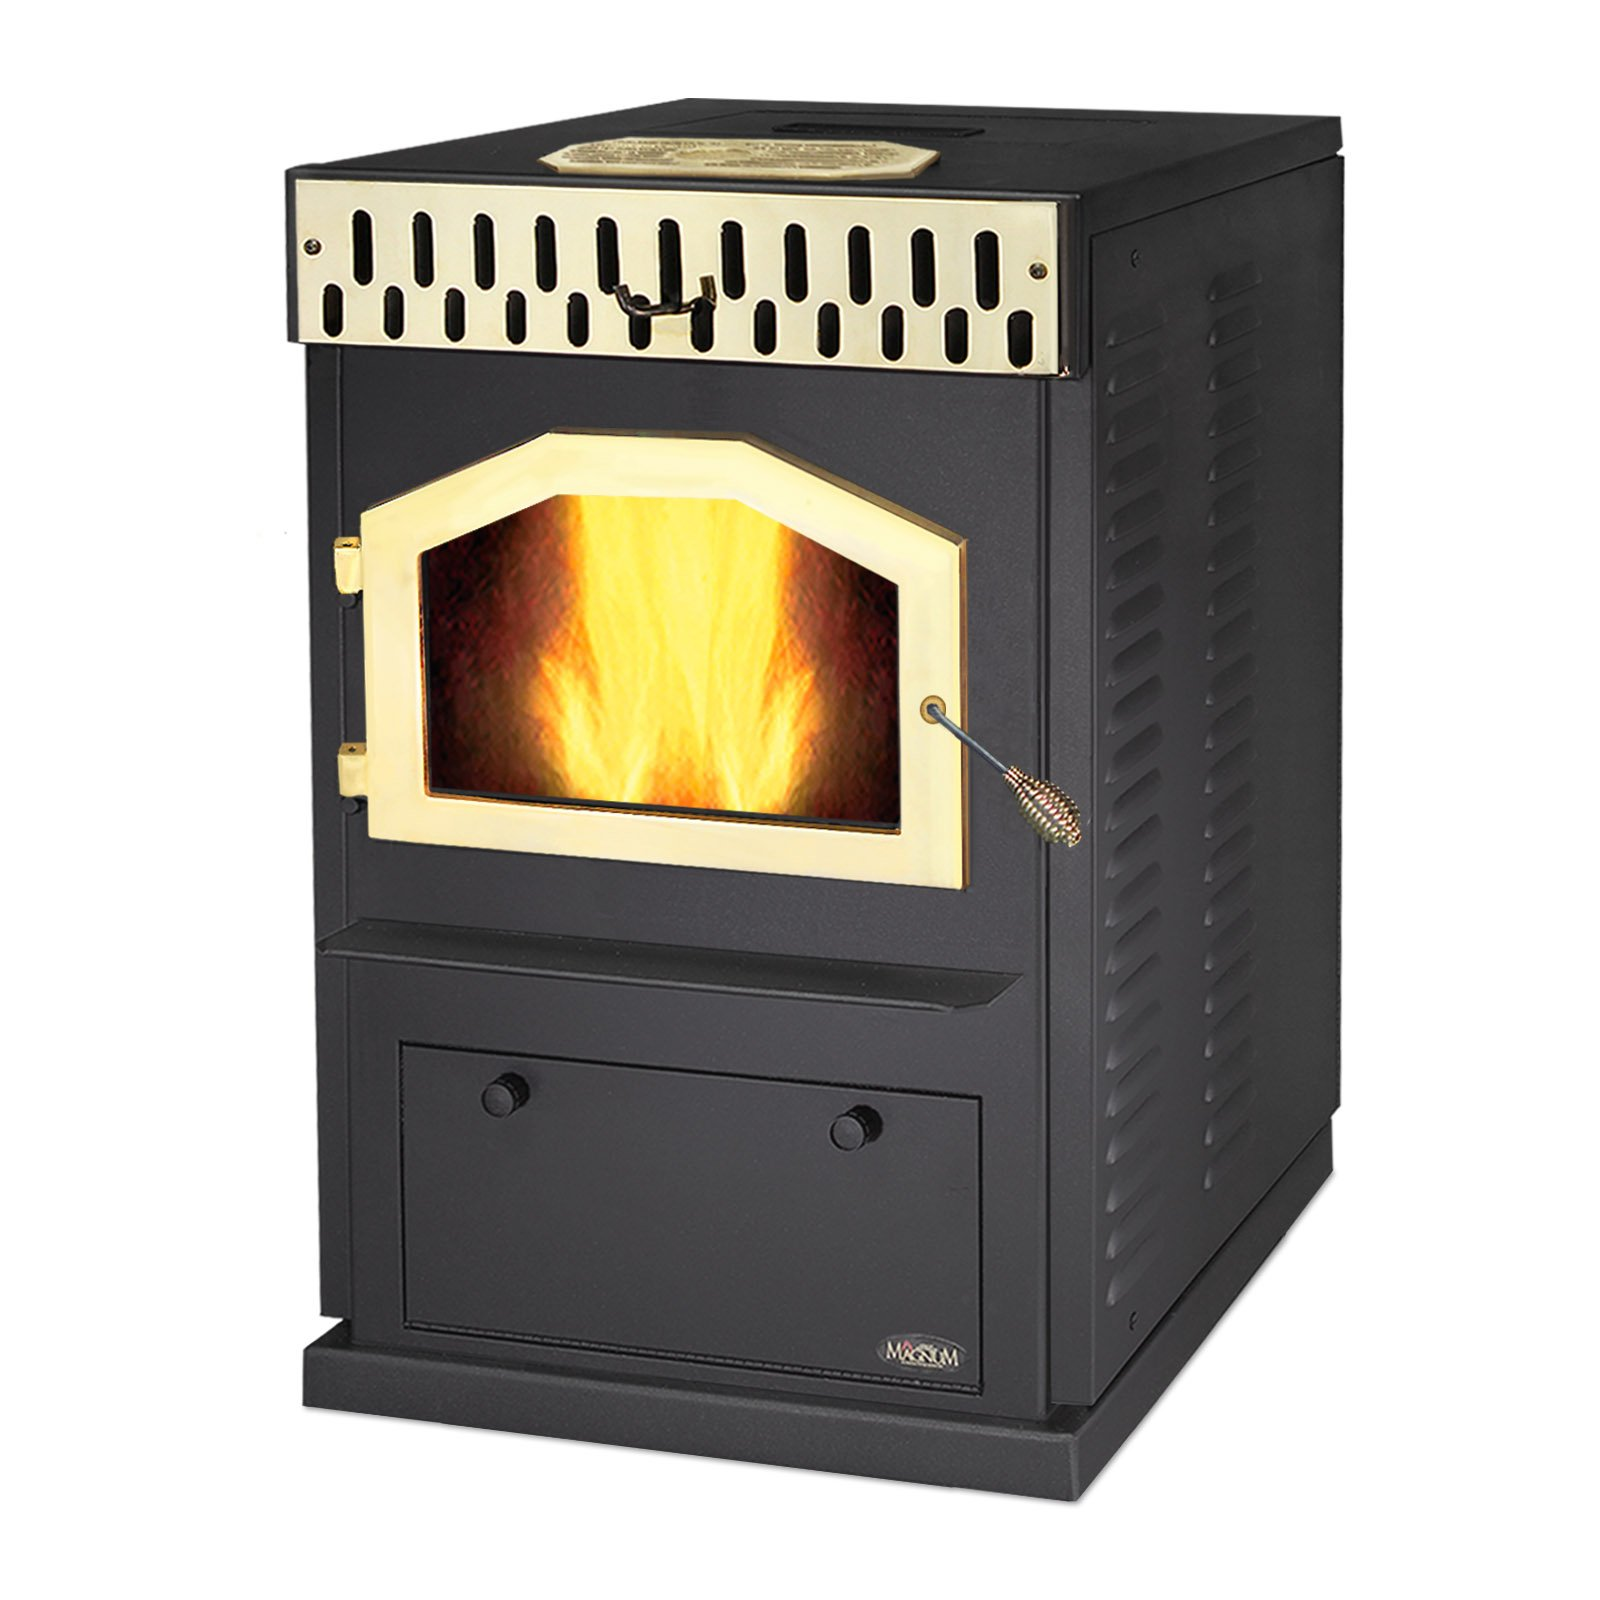 MagnuM Countryside in Black with Custom Gold Door Wood Pellet Stove 32,000 BTU Hand-Built in USA